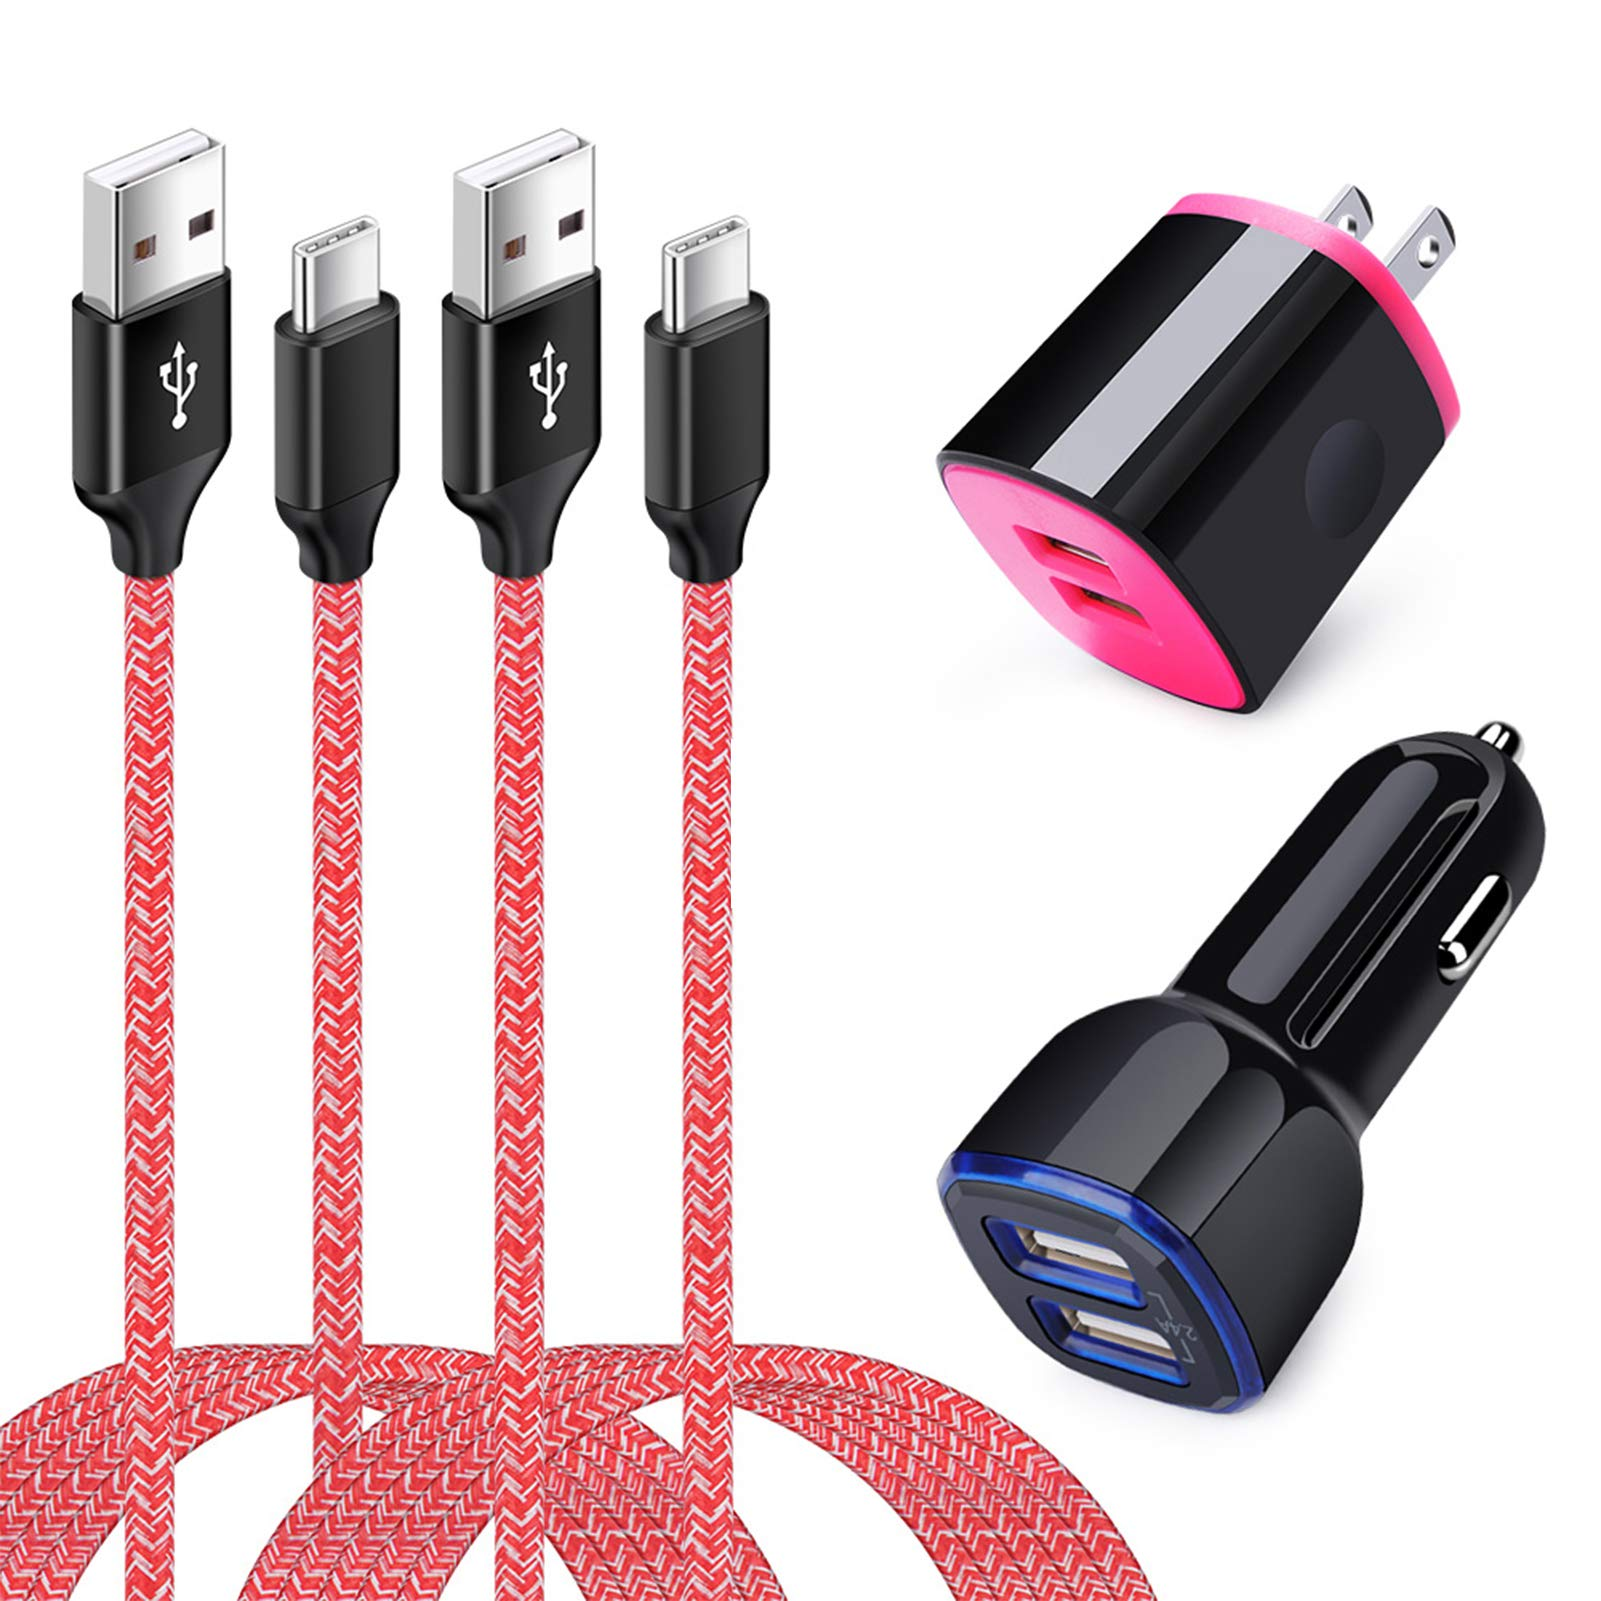 Professional Quick Charge USB Type-C for LG Optimus Zone 3 5Ft1.8M Data Charing Cable Plus Extra Strength for Fast /& Quick Charge Speeds! Black